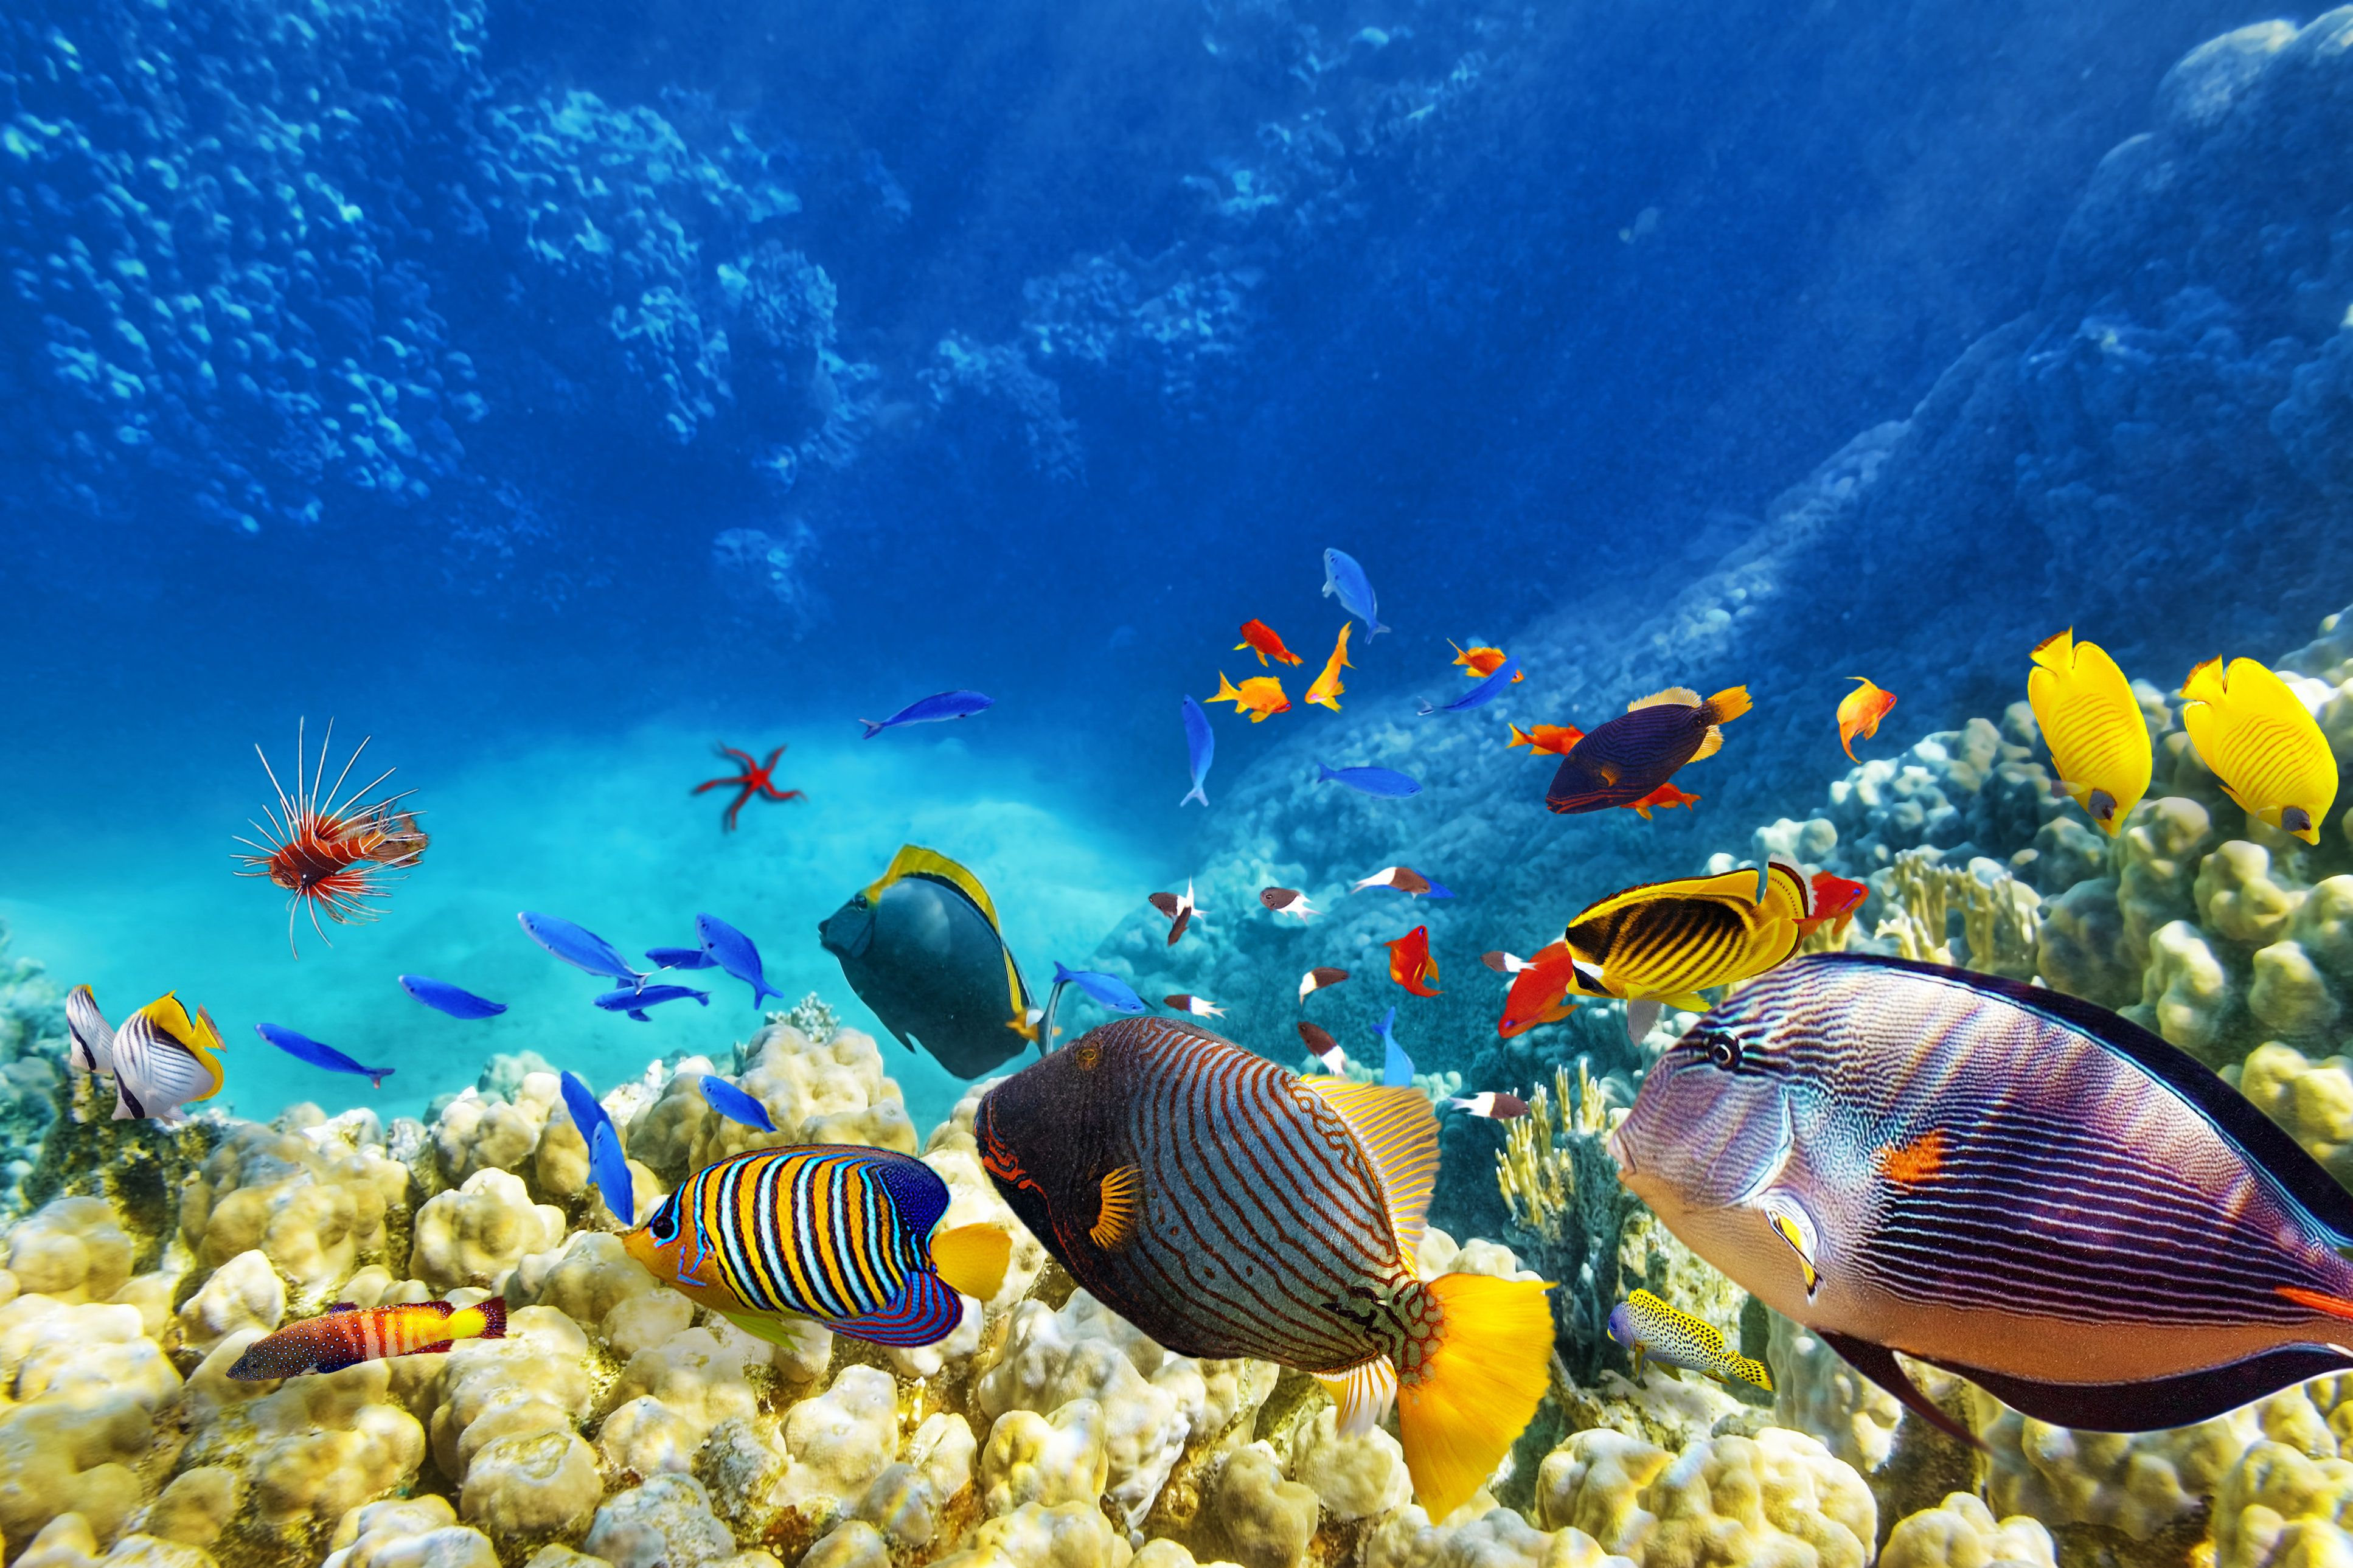 Animated Aquarium Wallpaper For Windows 8 Save The Reefs How To Preserve The Caribbean S Underwater